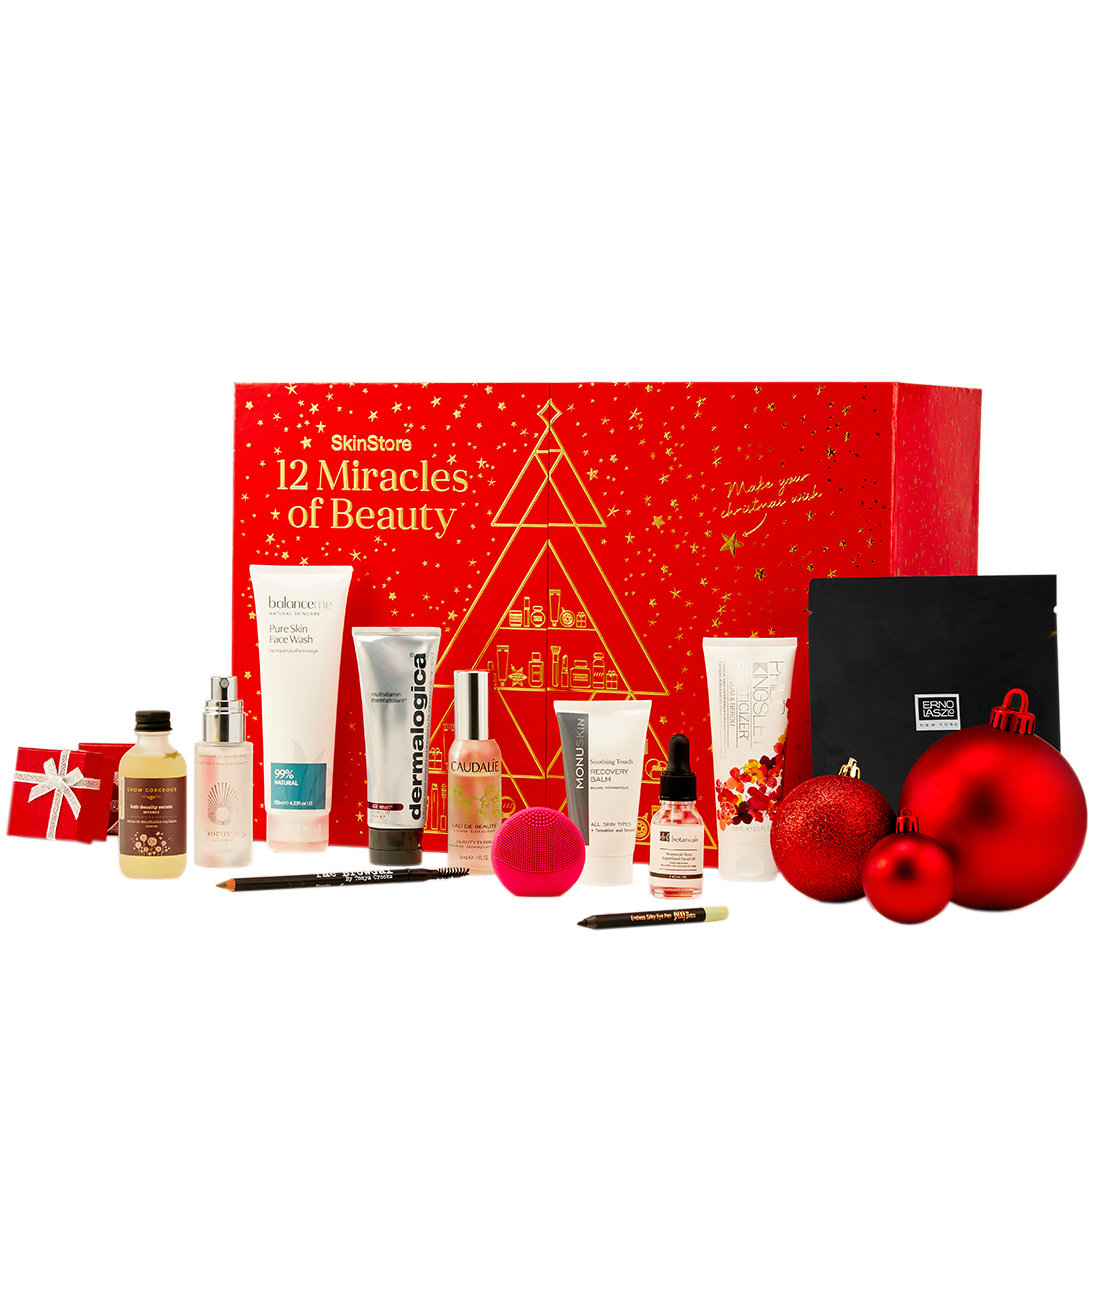 Skinstore's 12 Miracles of Beauty